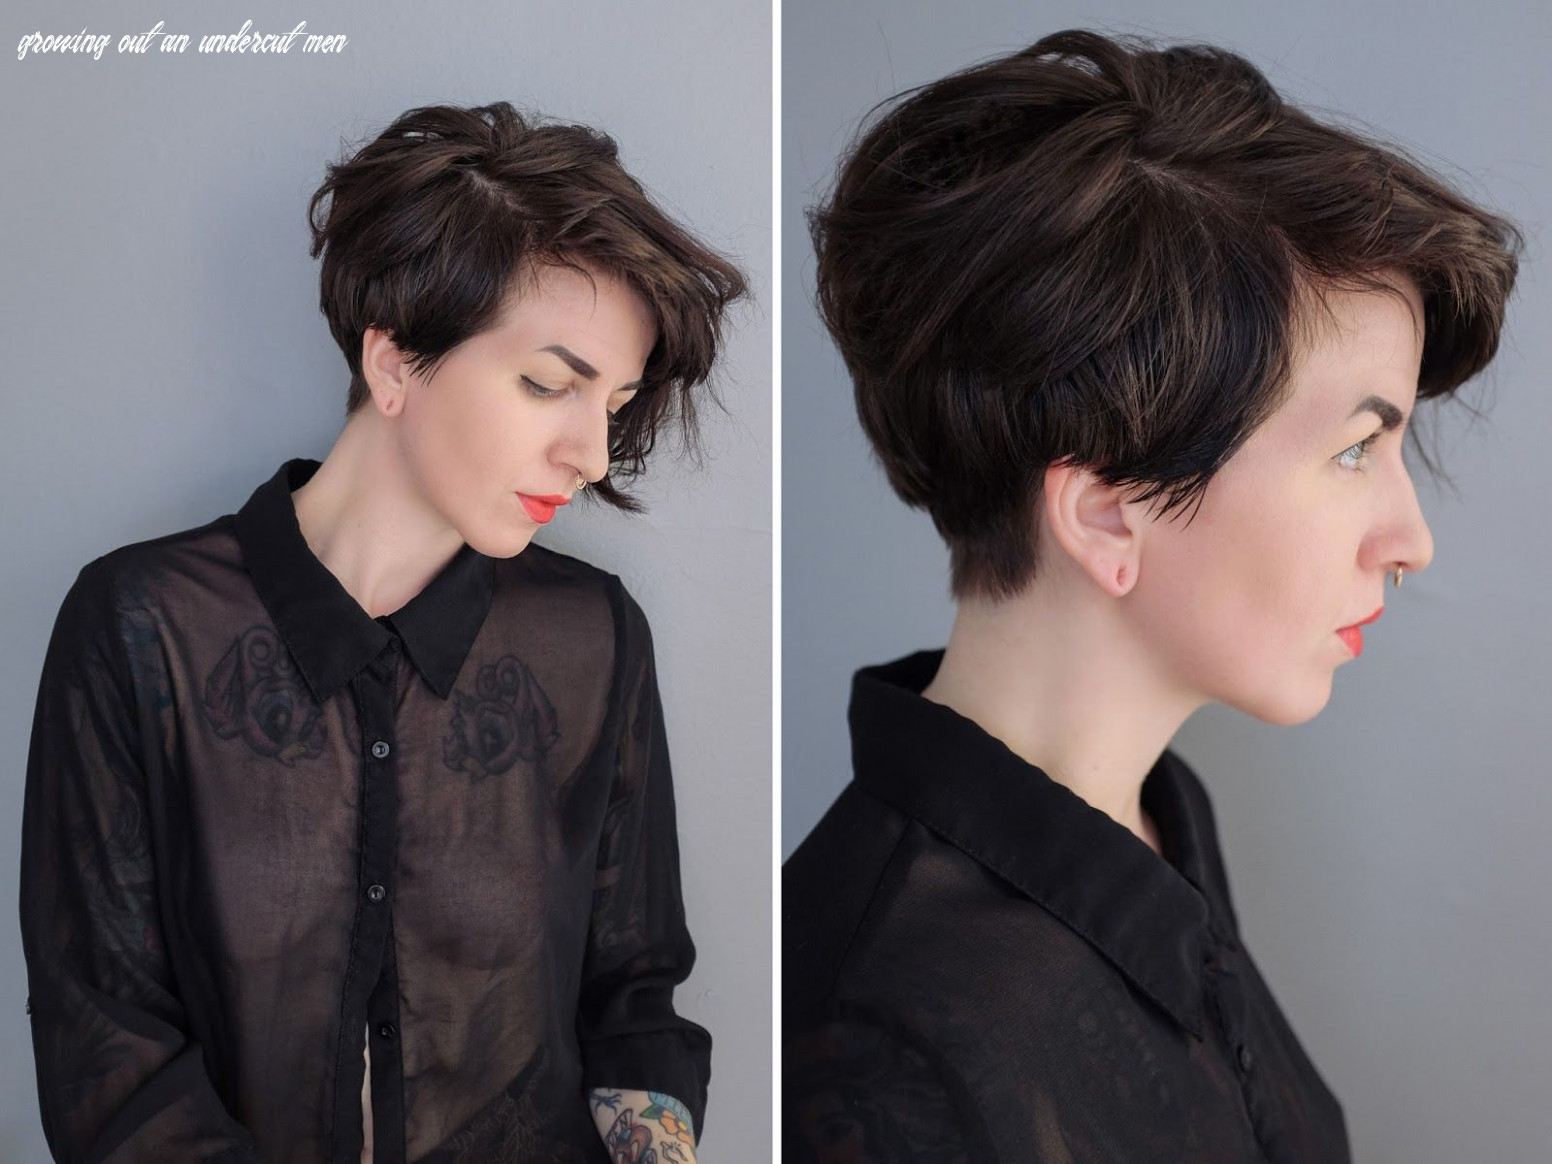 Growing out an Undercut | Undercut hairstyles, Growing out hair ...